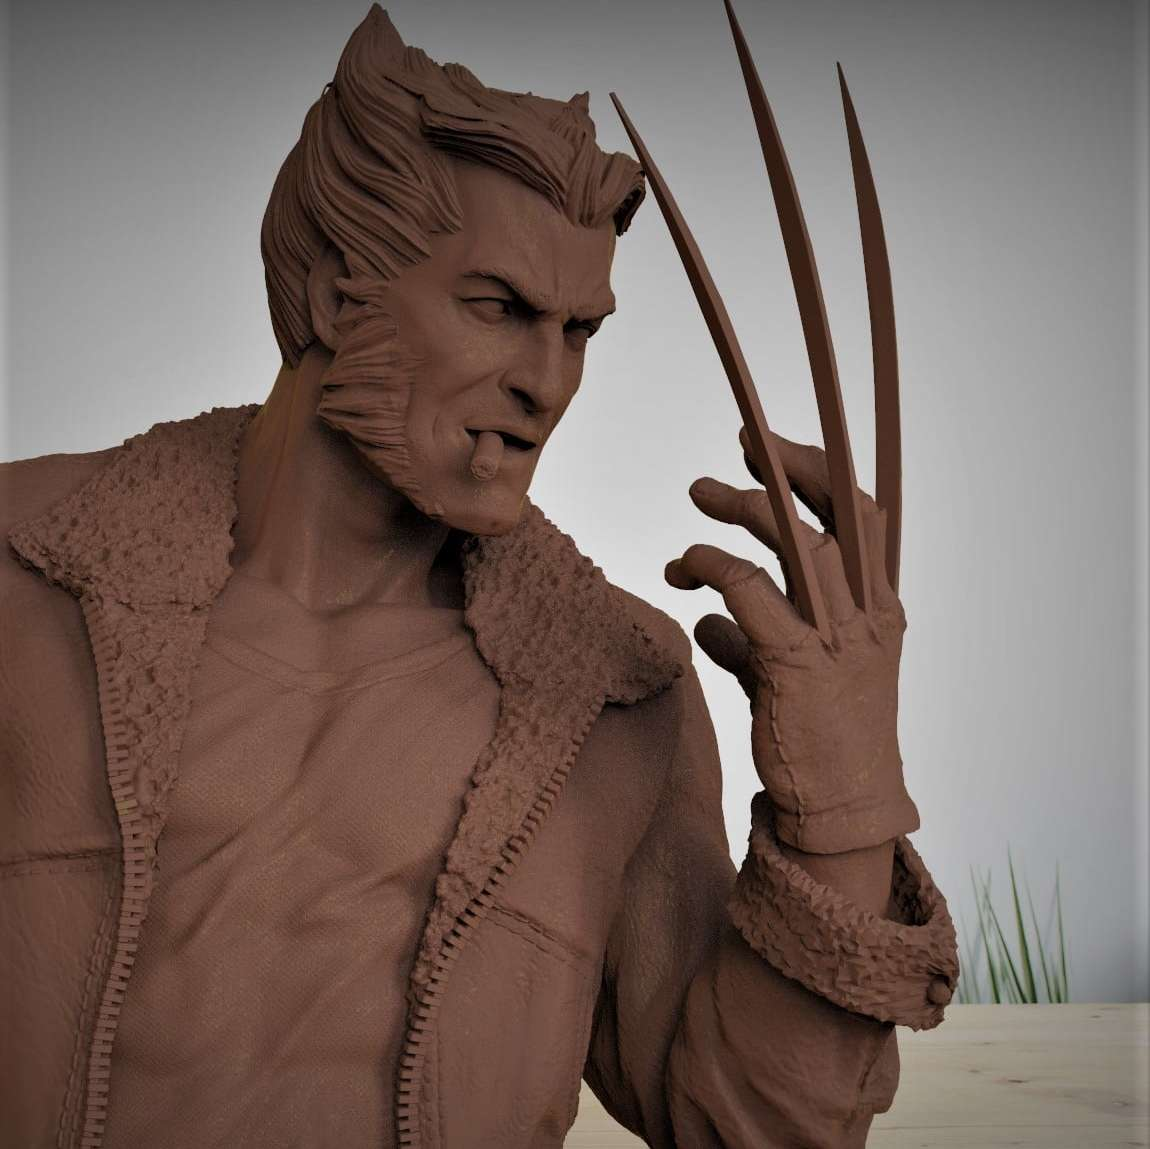 Bust Wolverine - Wolverine bust modeling inspired by Alex Ross's Art - The best files for 3D printing in the world. Stl models divided into parts to facilitate 3D printing. All kinds of characters, decoration, cosplay, prosthetics, pieces. Quality in 3D printing. Affordable 3D models. Low cost. Collective purchases of 3D files.